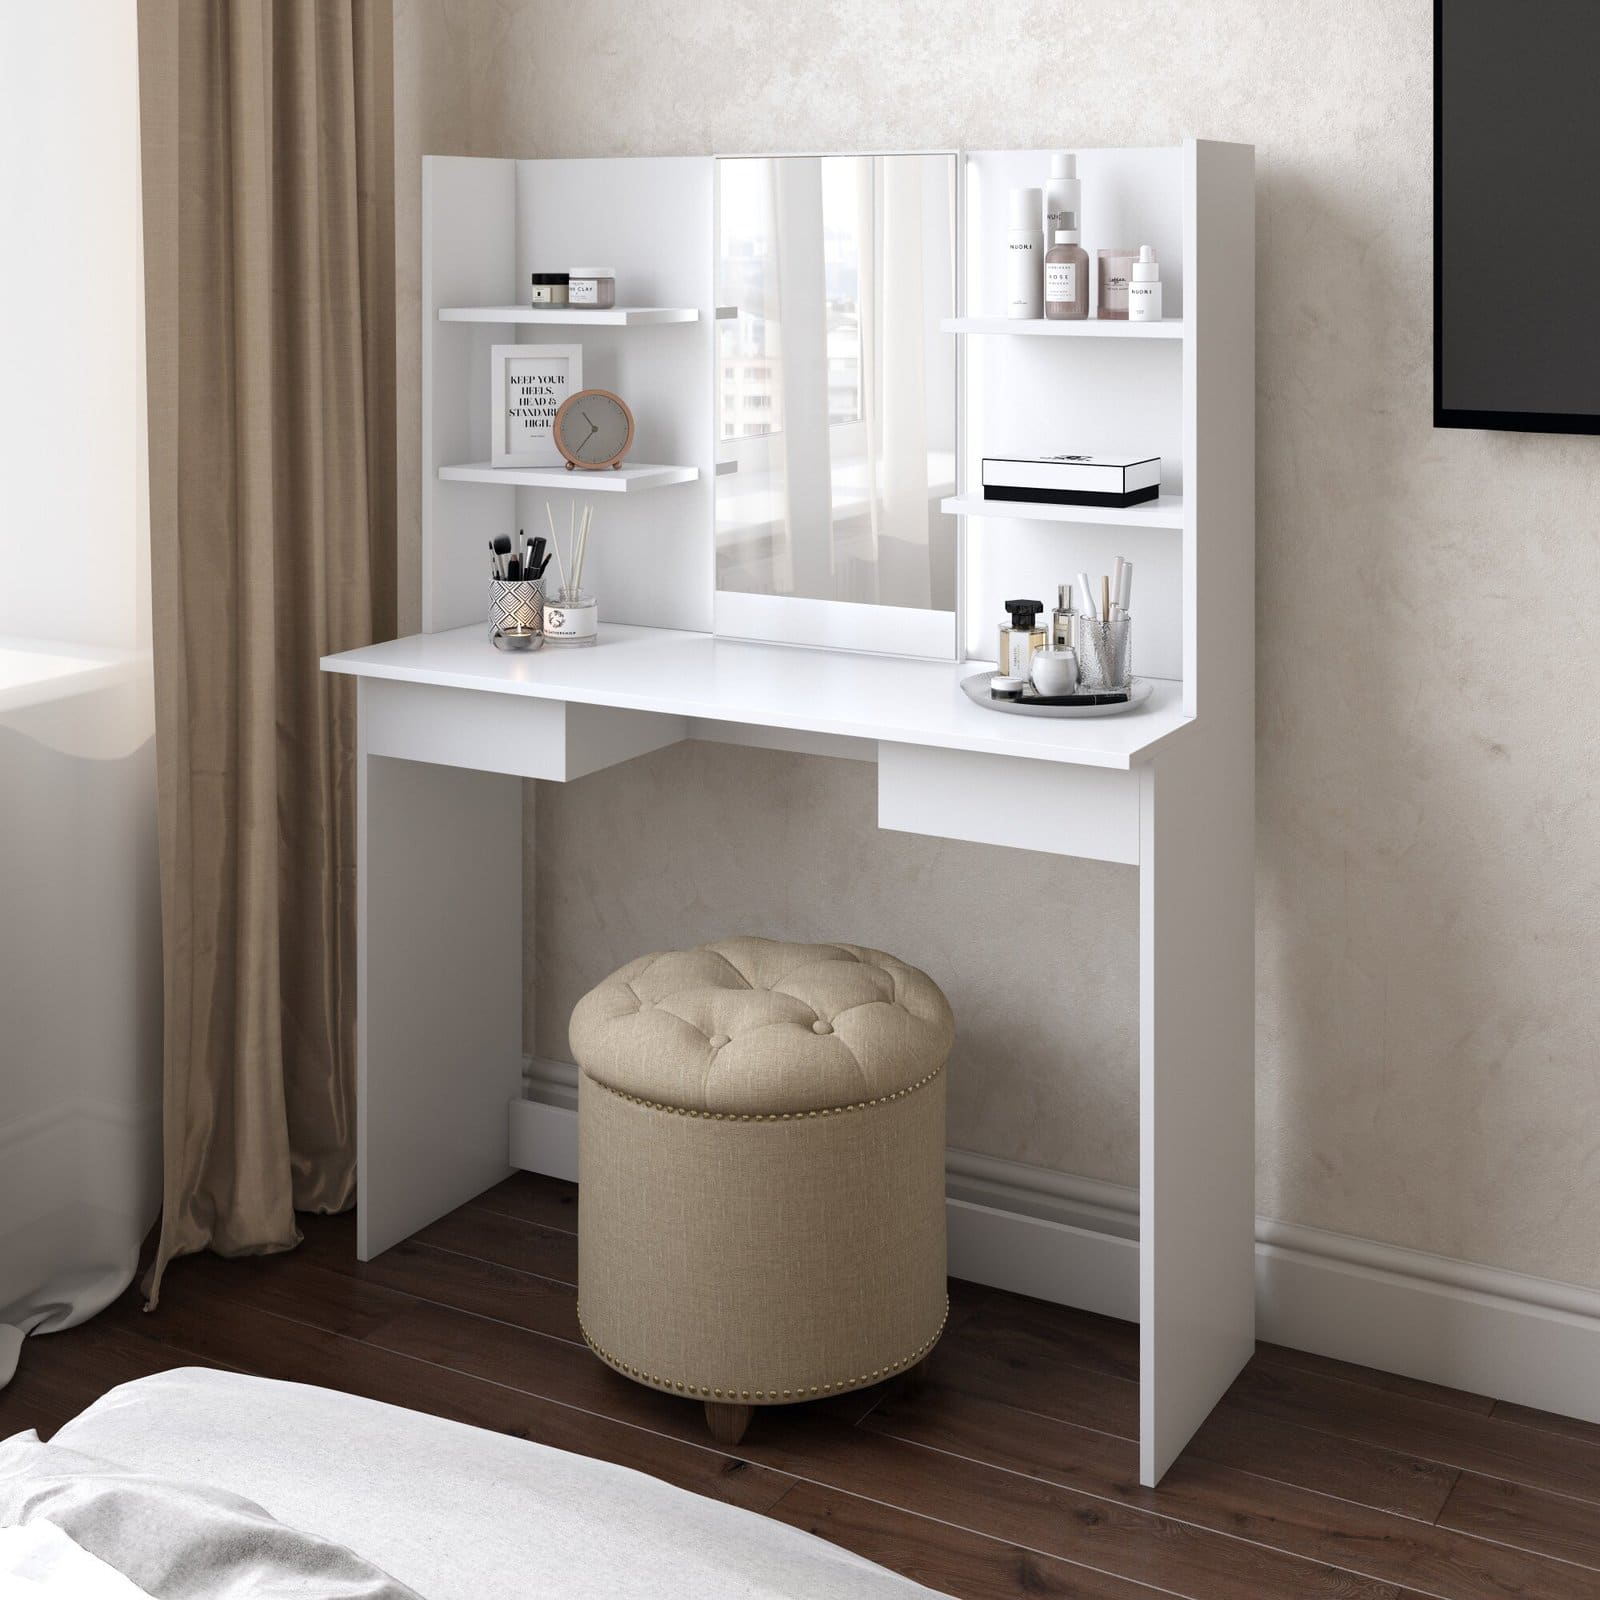 Find A Vanity With Shelves